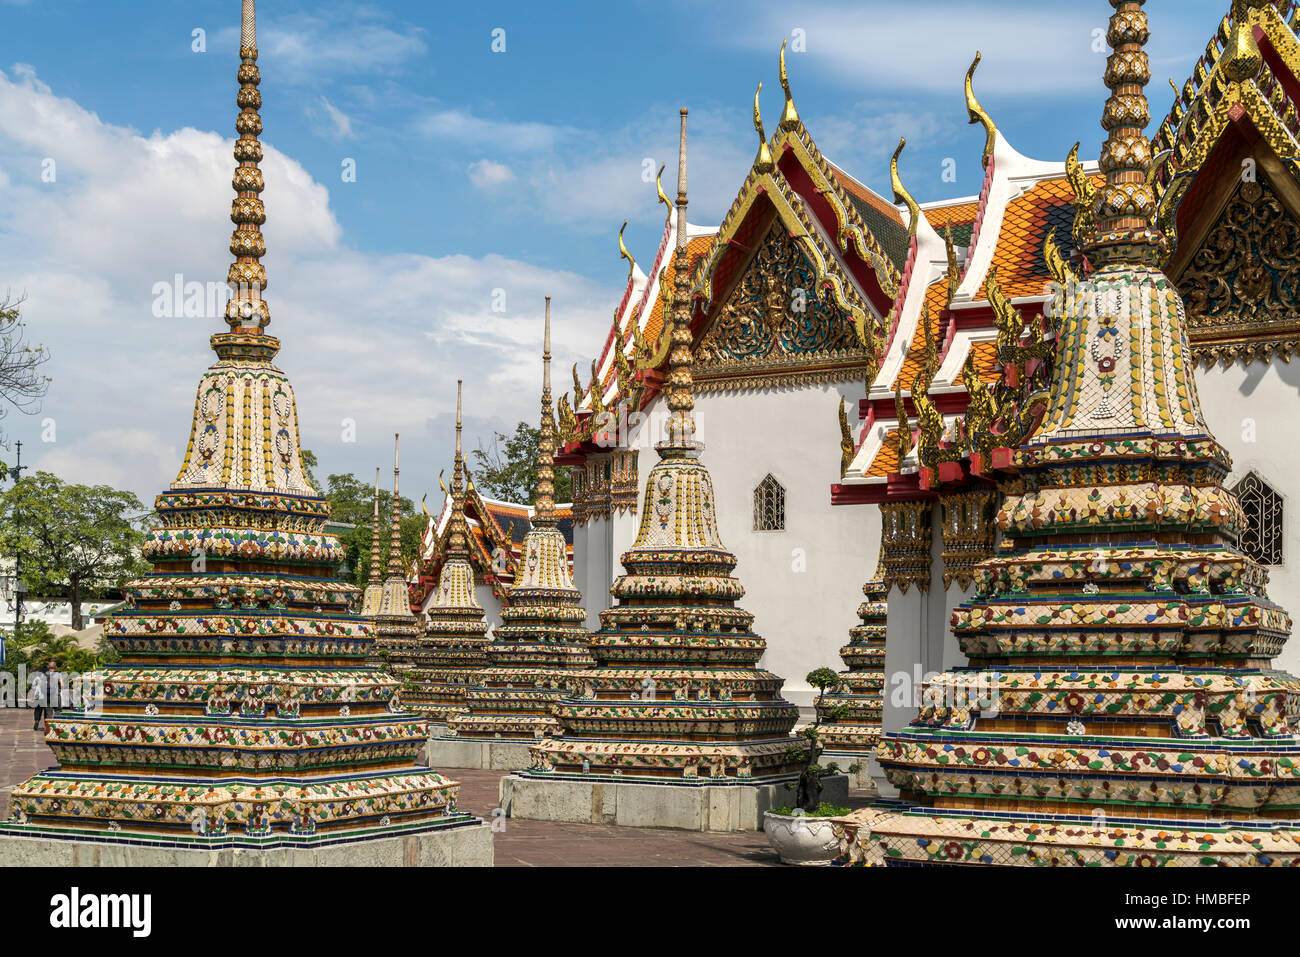 Chedi of the buddhist temple complex Wat Pho, Bangkok, Thailand, Asia - Stock Image